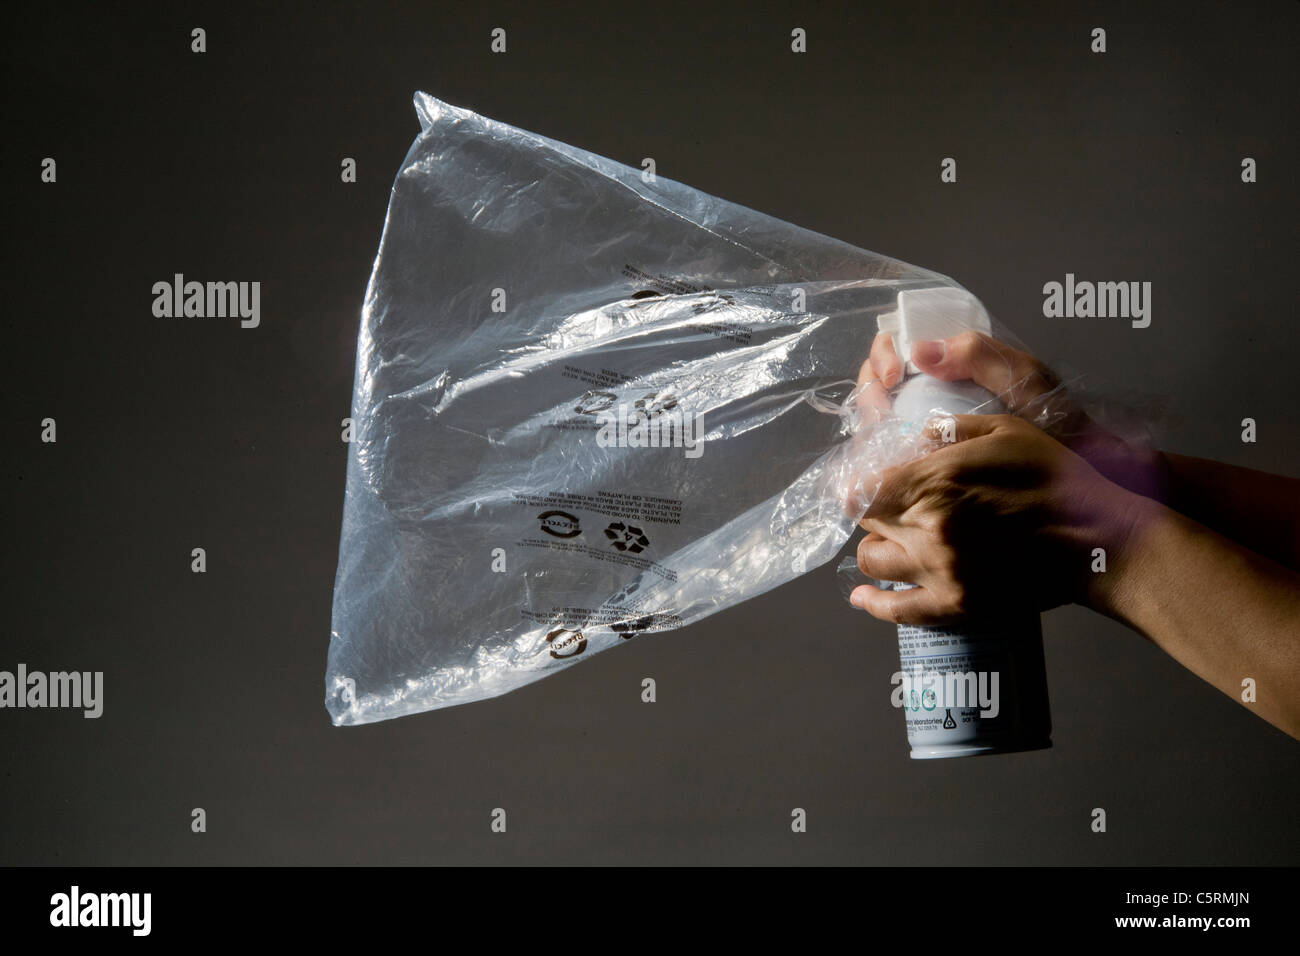 A plastic bag is filled by an aerosol inhalant gas can for illegal use as a drug. - Stock Image